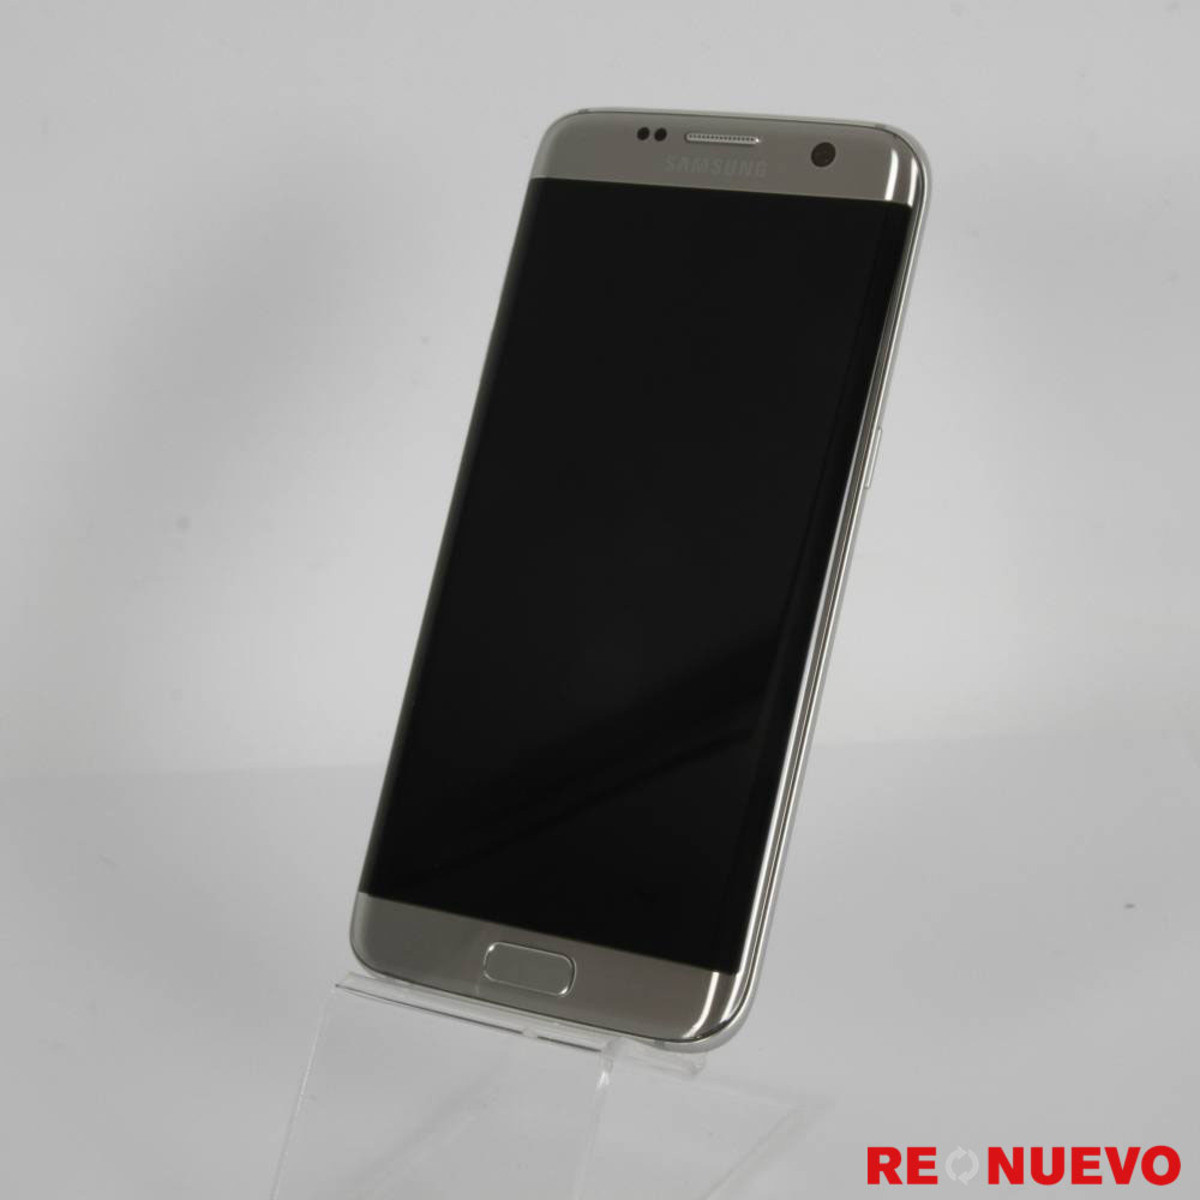 Comprar Galaxy S7 Edge Fresco Prar Samsung Galaxy S7 Edge De 32gb Silver De Segunda Of Comprar Galaxy S7 Edge Perfecto Samsung Galaxy S7 Edge Celulares Costa Rica